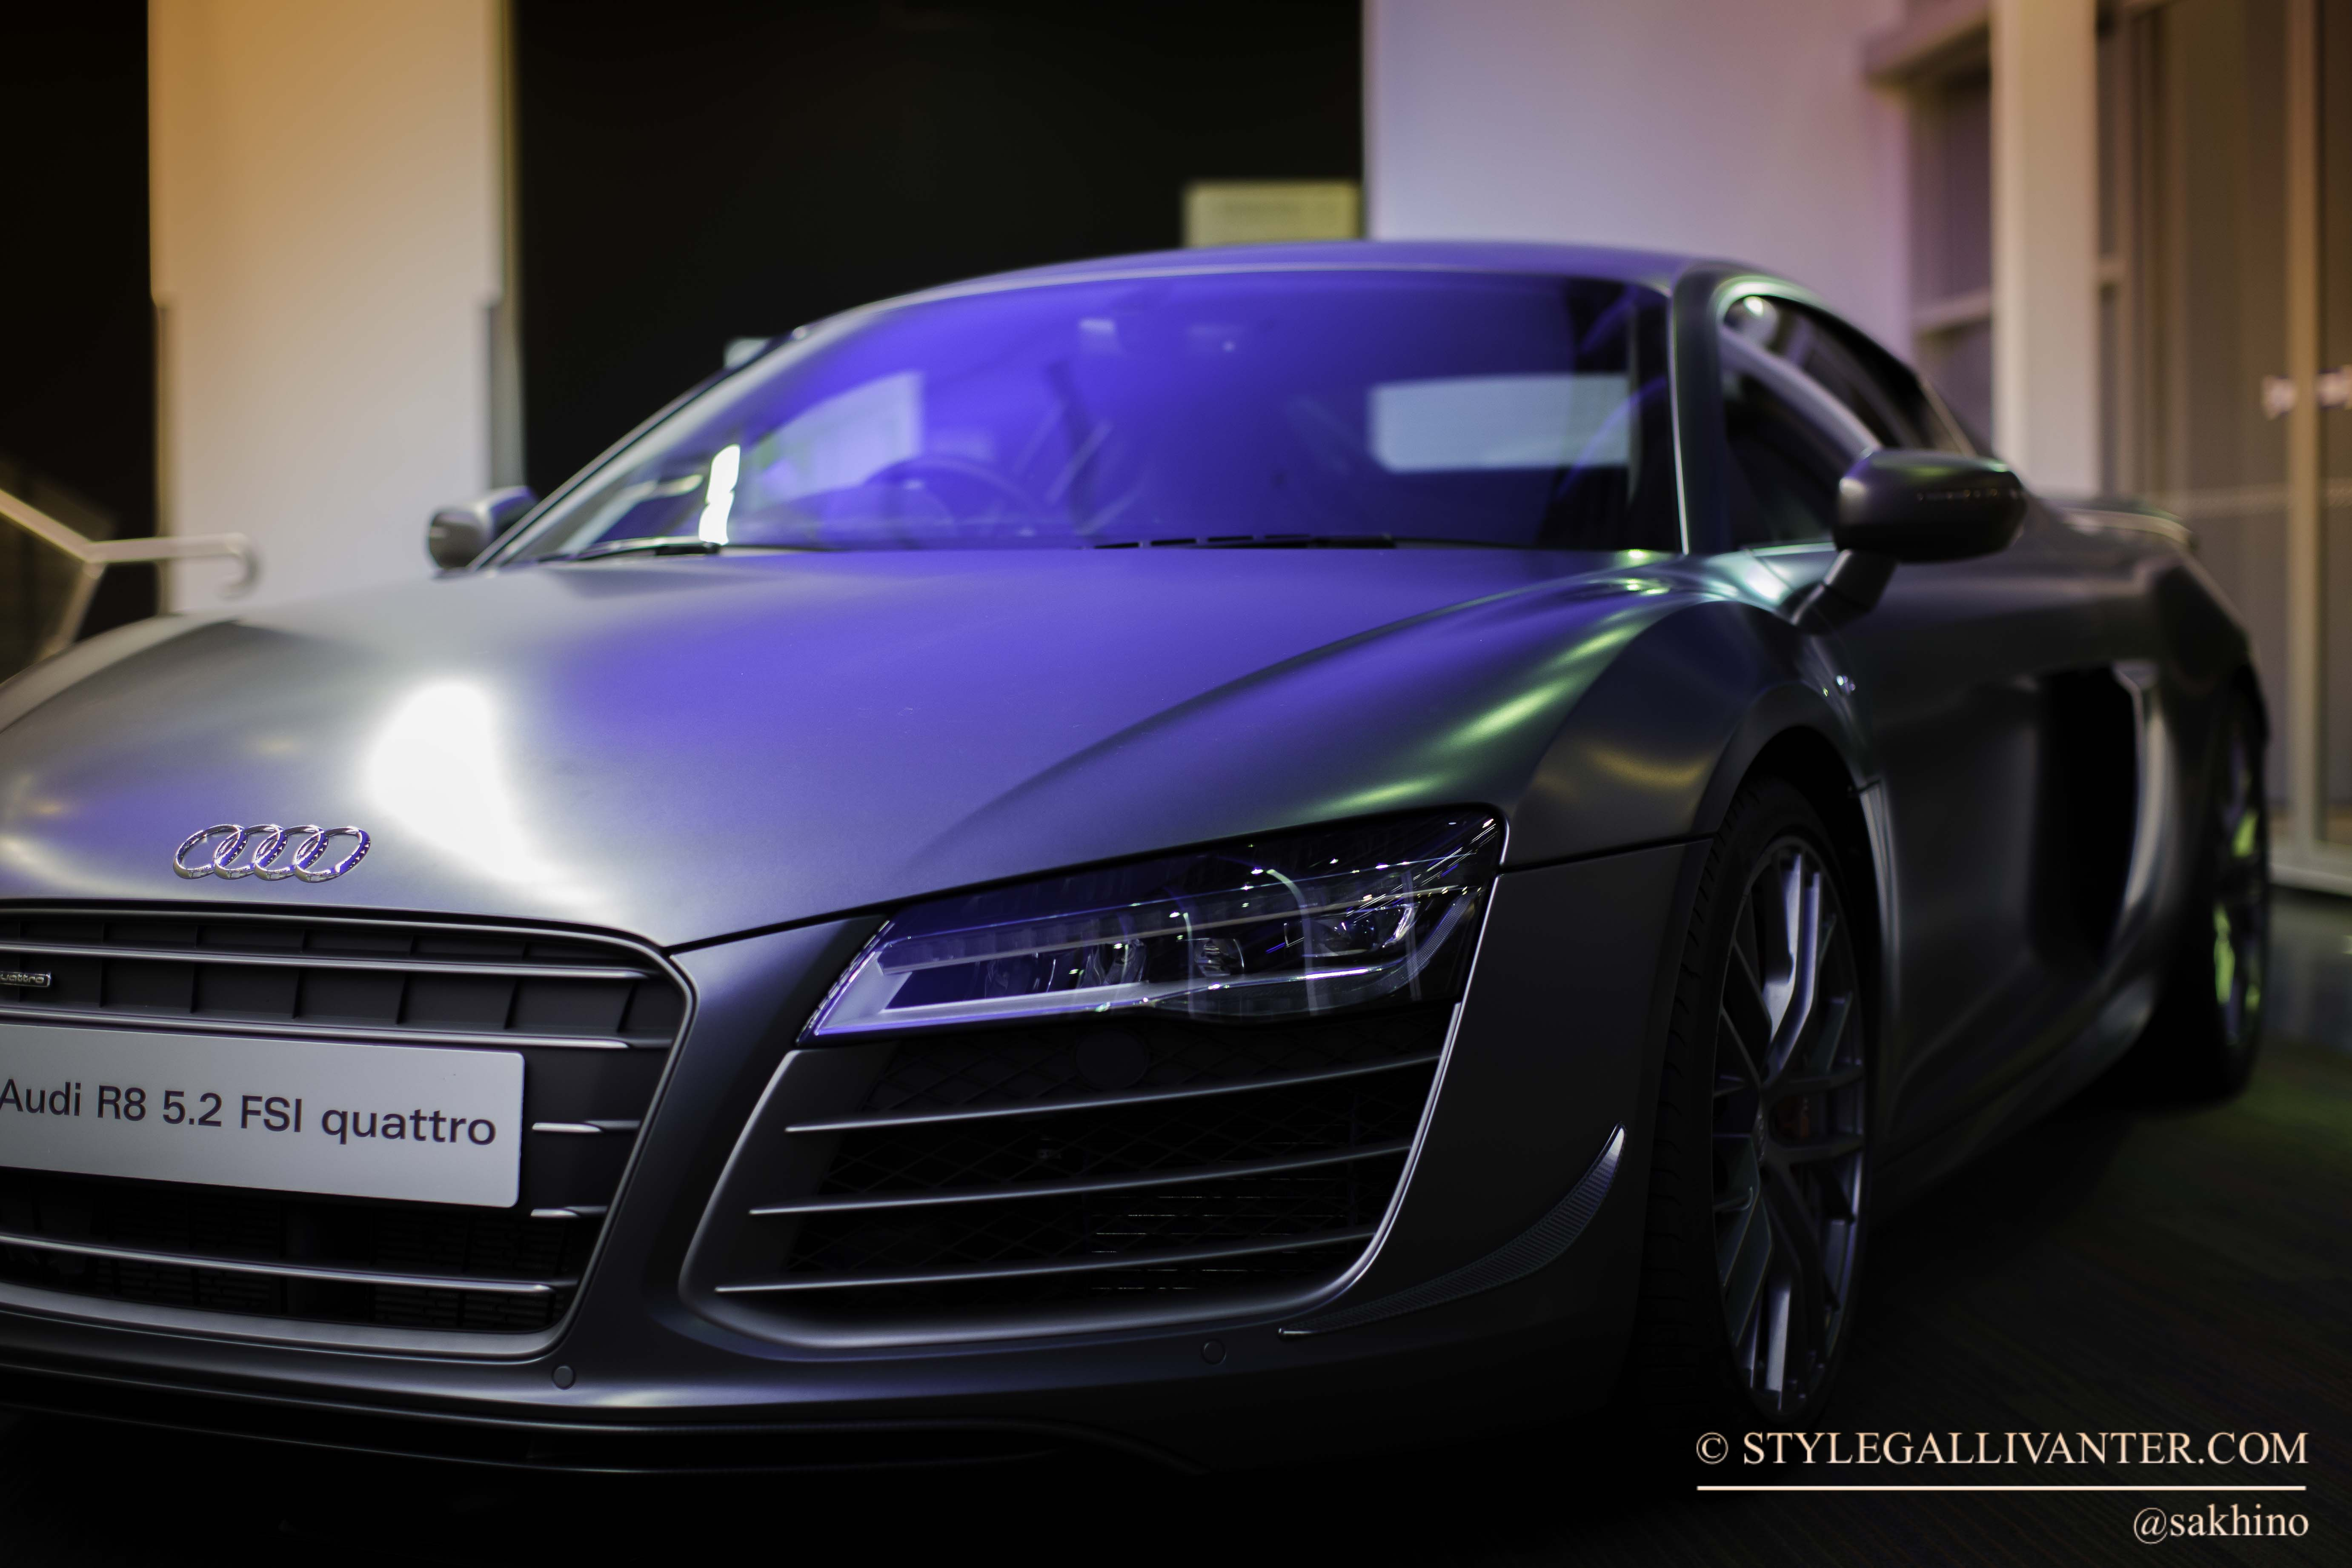 stylegallivanter.com-copyright-2015_not-to-be-used-without-permission_PHOTOGRAPHY-CREDIT-ANDREW-KIBUKA_fashfest-2015-audi_audi-r8-5.2-fsi-quattro